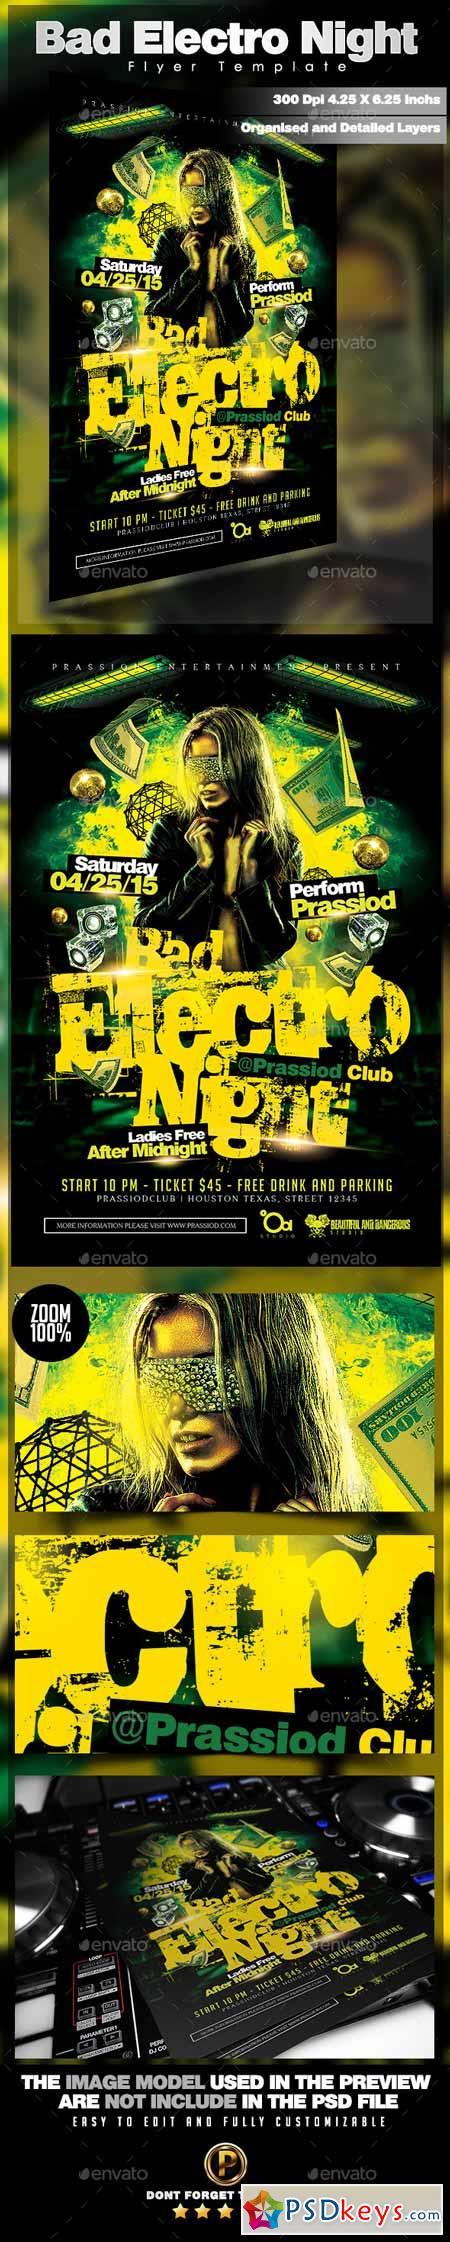 Bad Electro Night Flyer Template 11294479